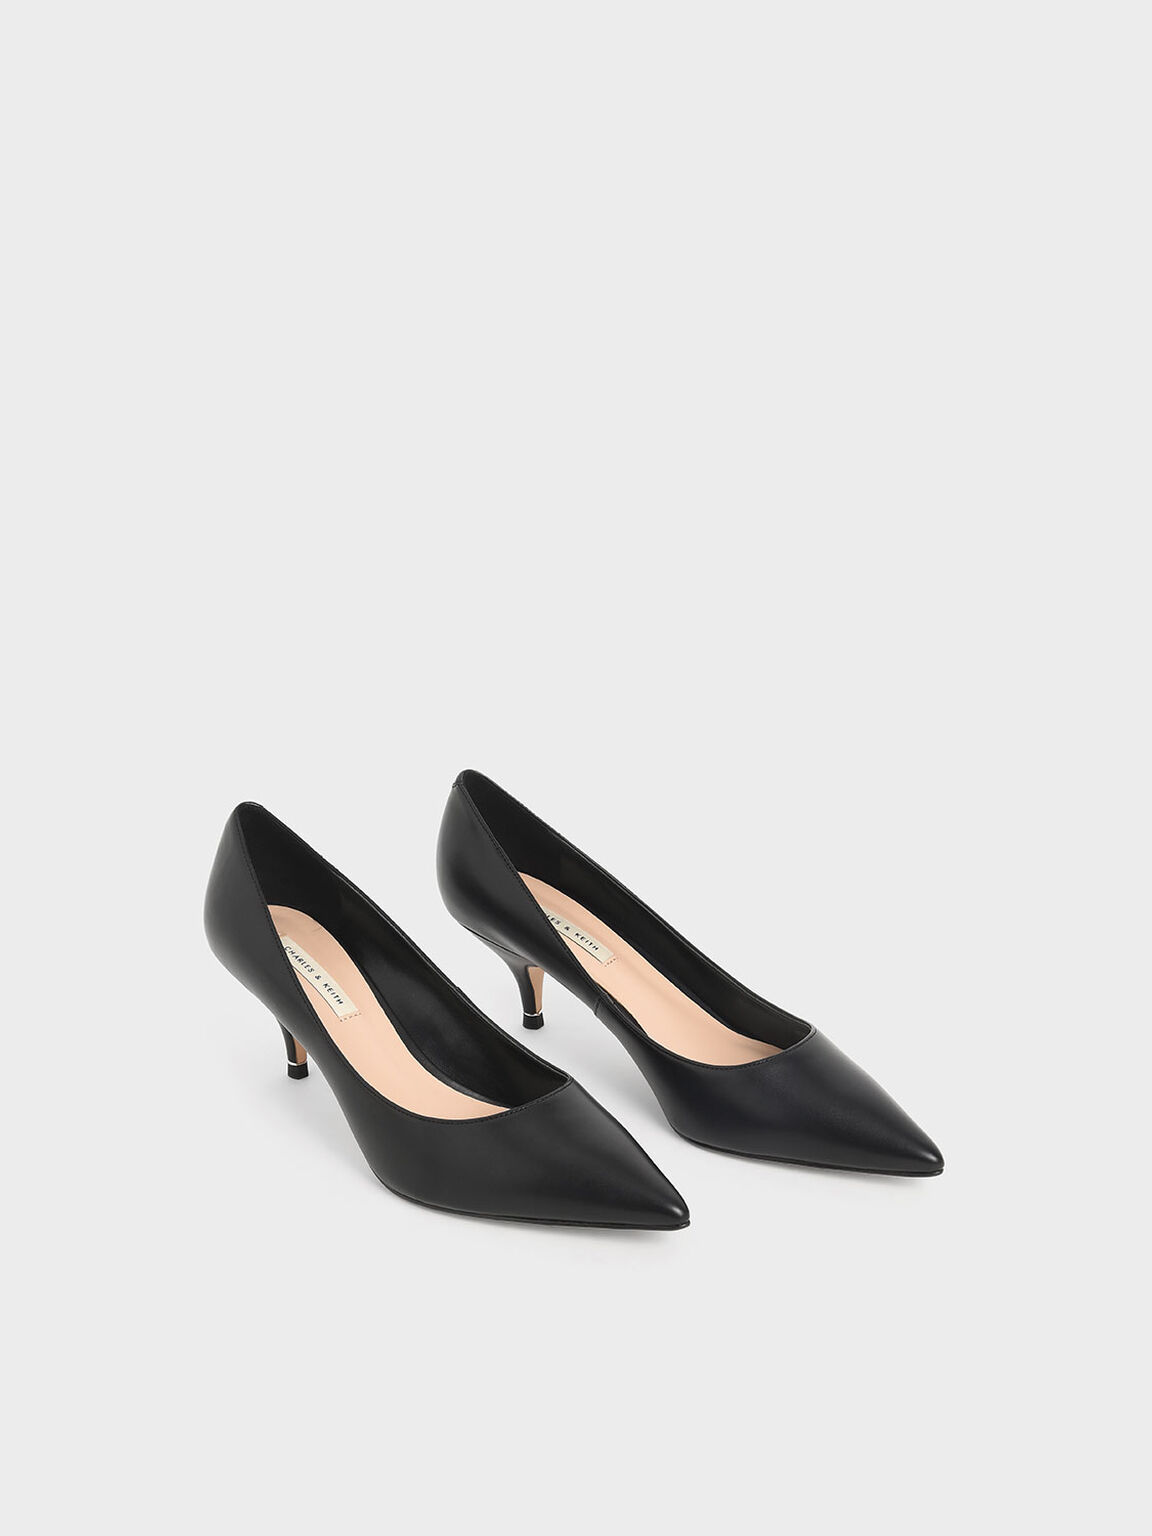 Classic Pointed Toe Pumps, Black, hi-res